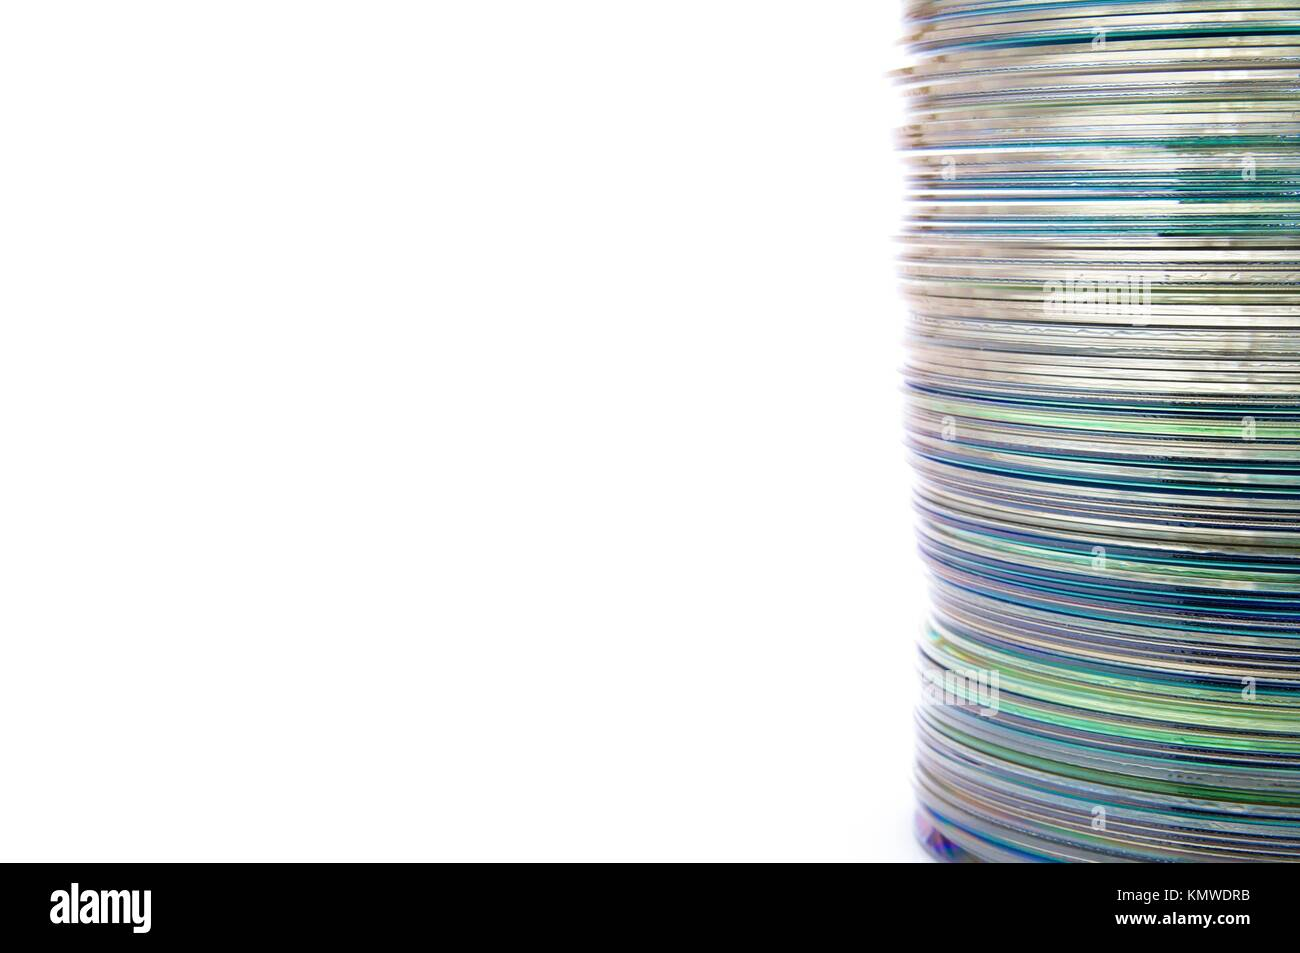 dvd group stacked on a white background - Stock Image